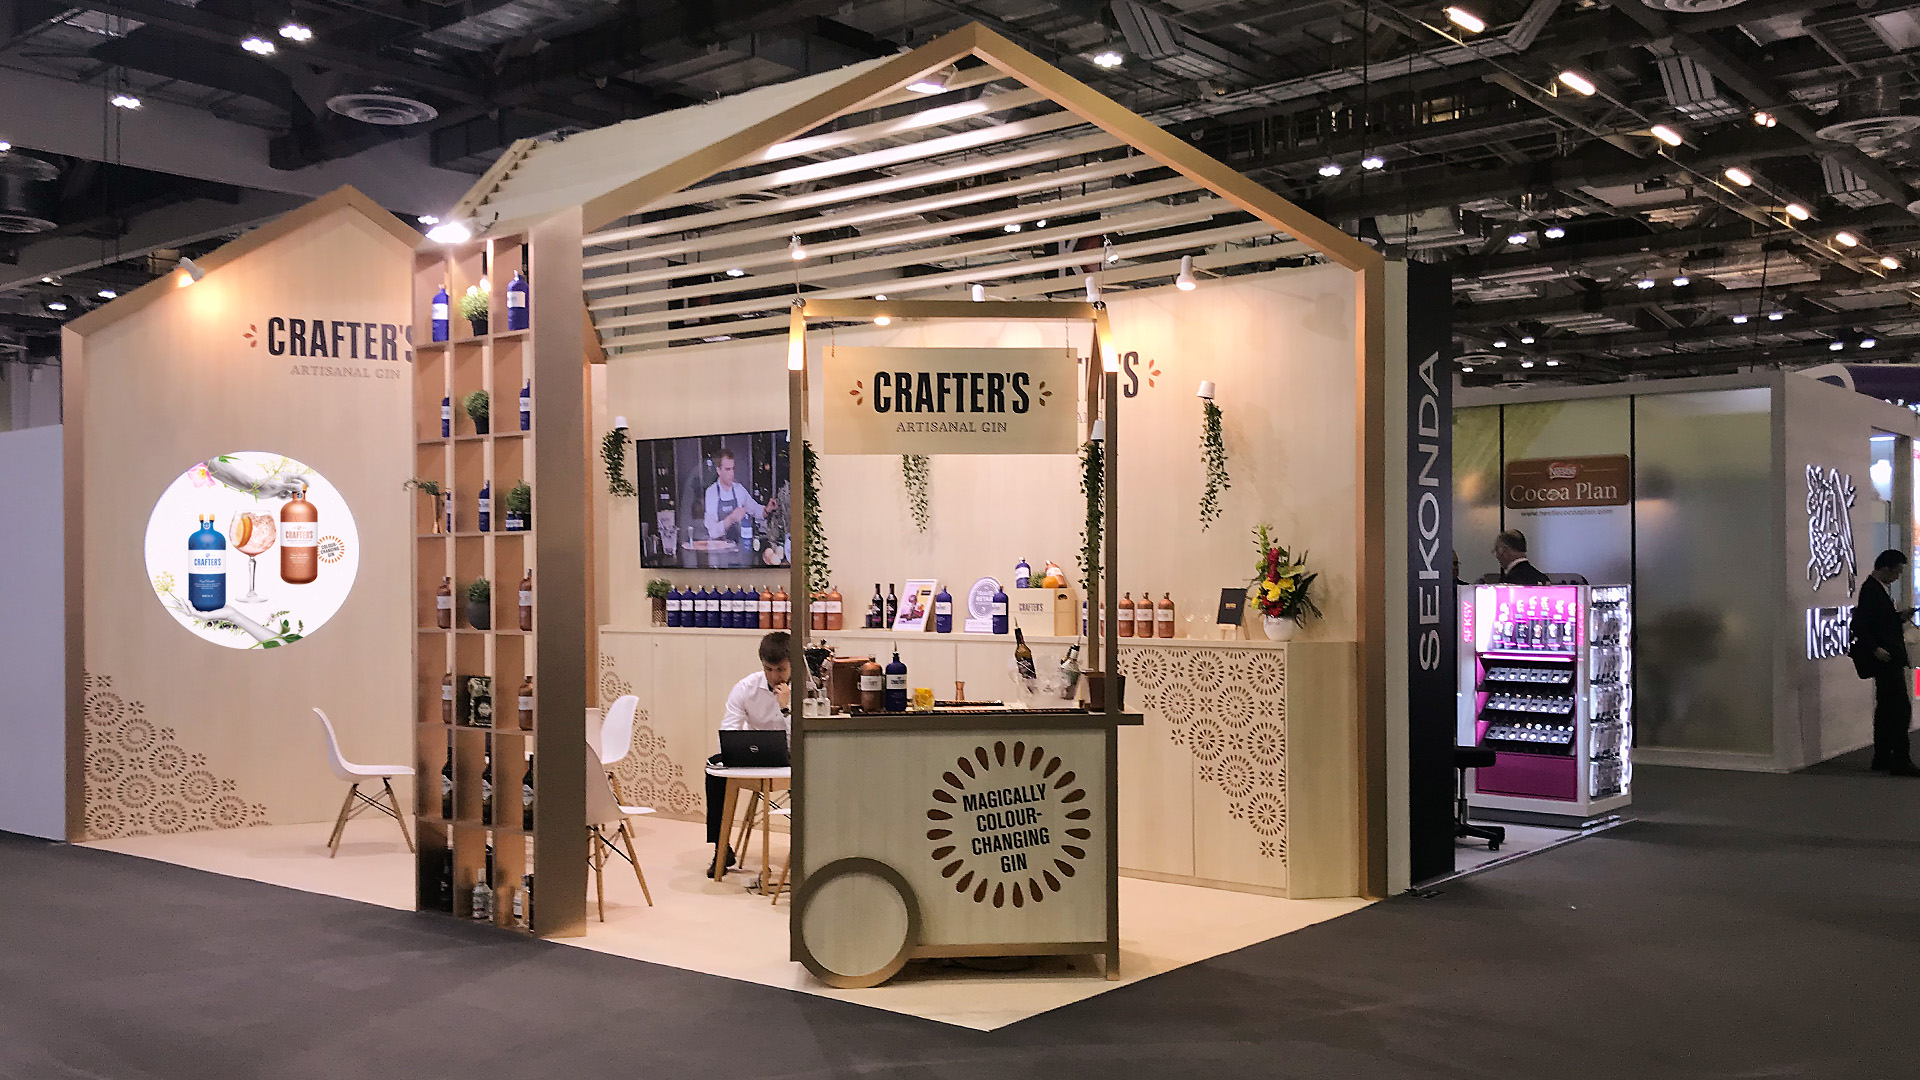 Crafters-TFWA-stand-brandnew-1